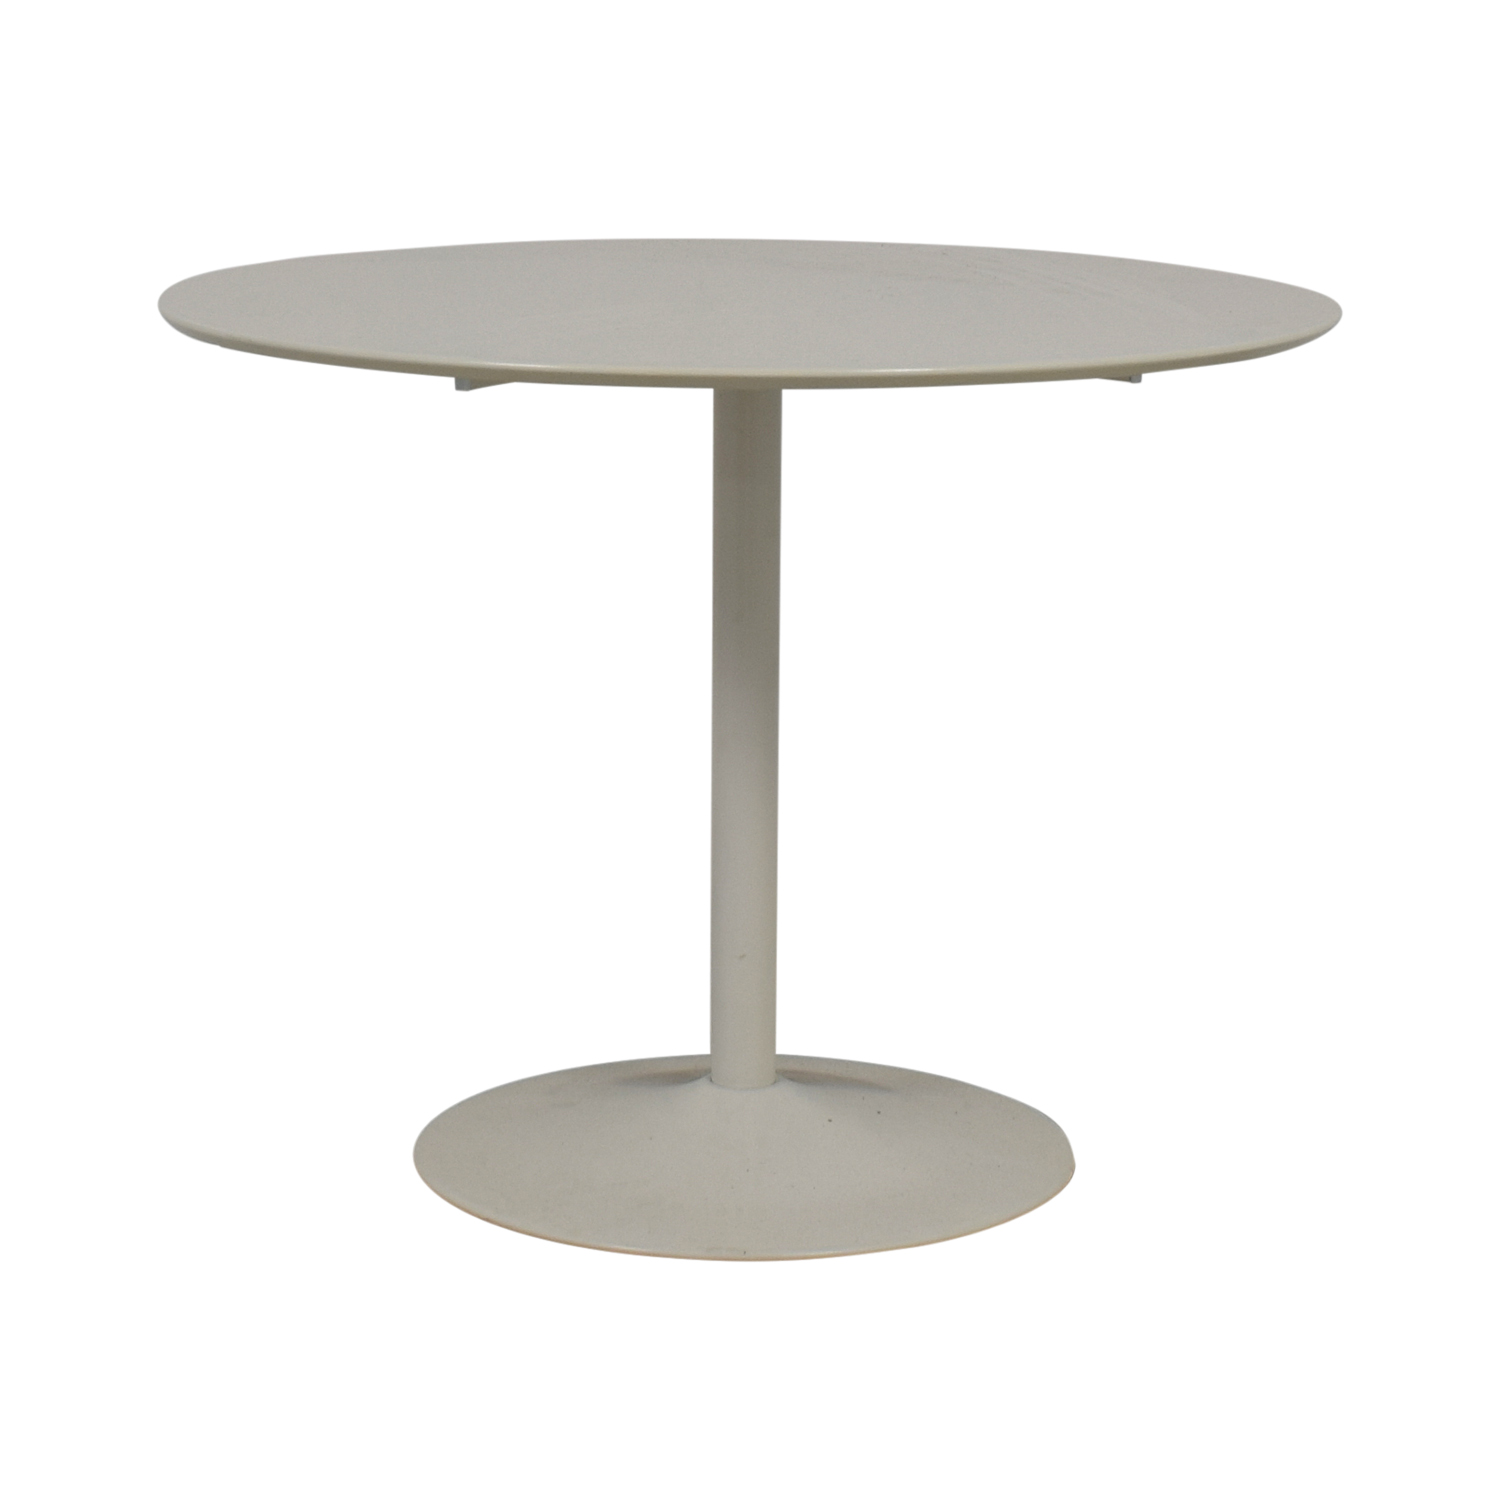 Buy CB2 Odyssey White Tulip Dining Table CB2 Accent Tables ...